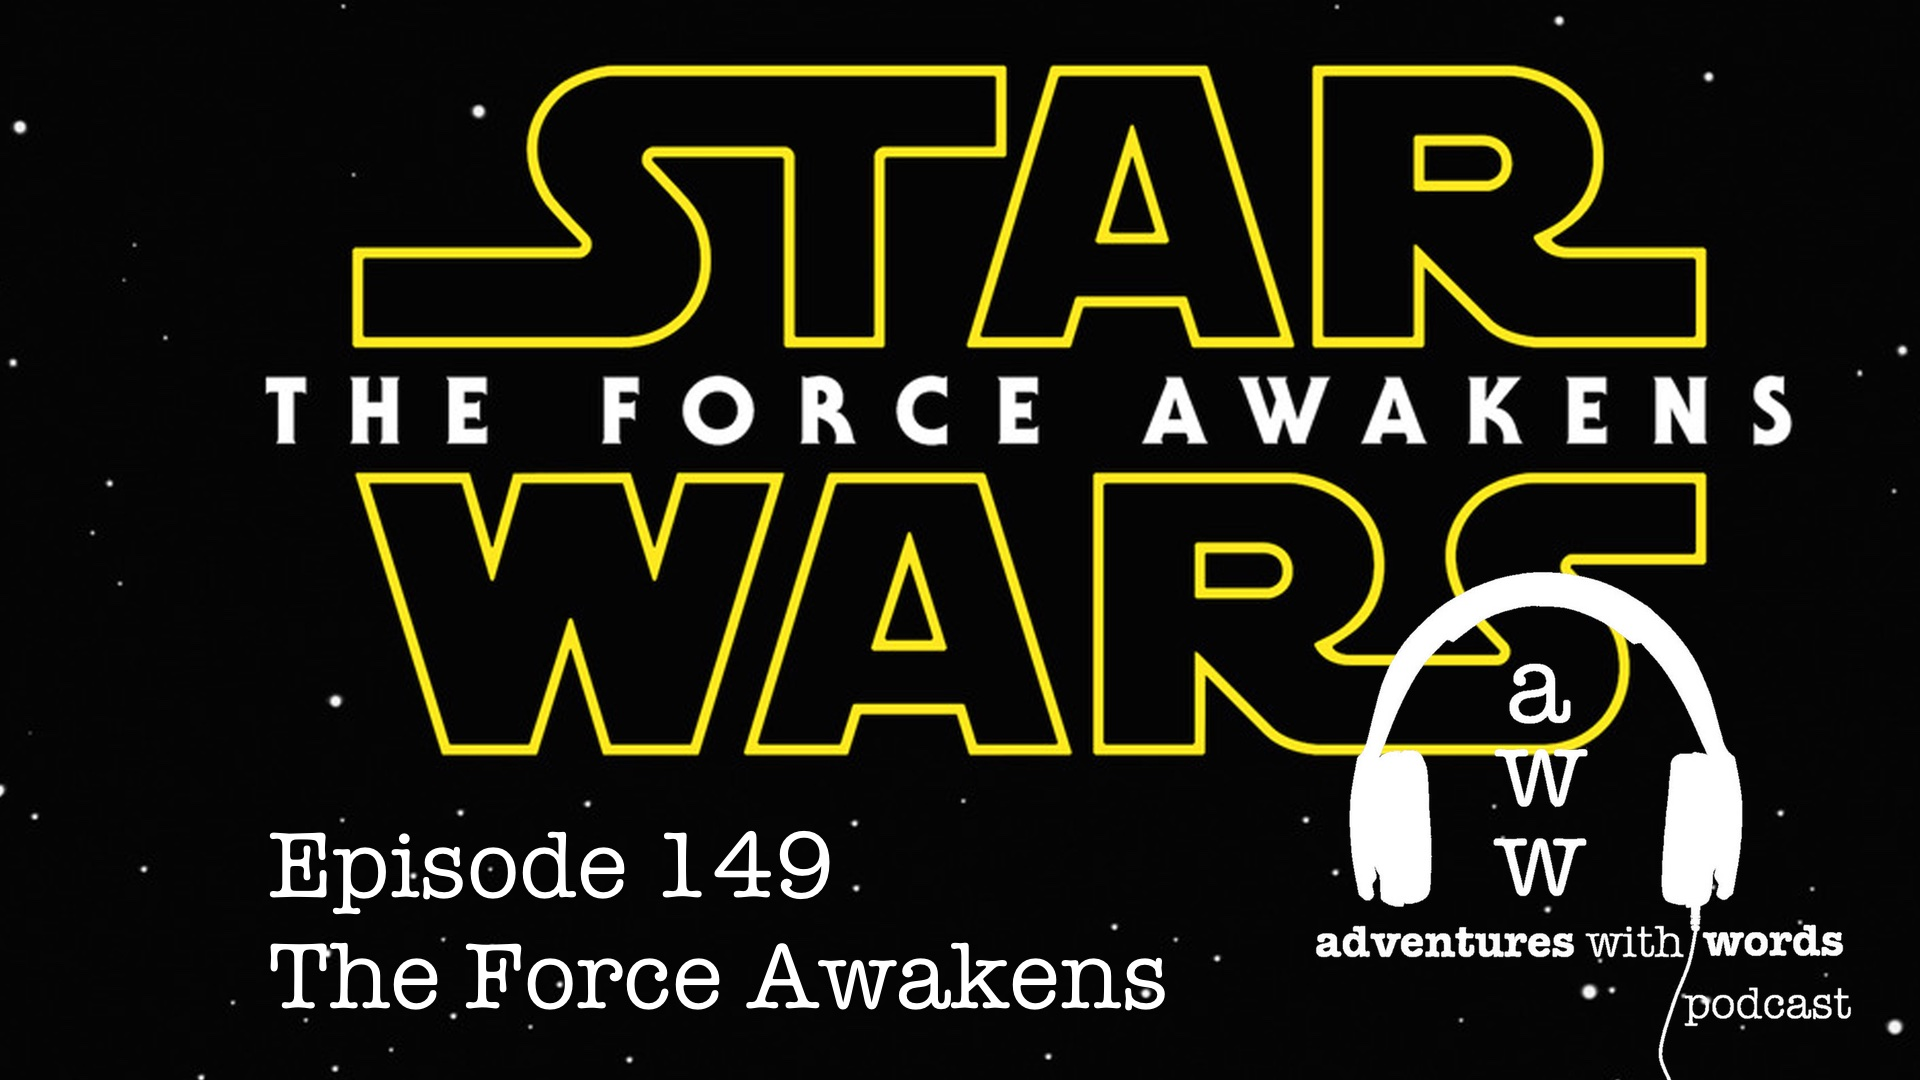 Podcast: The Force Awakens